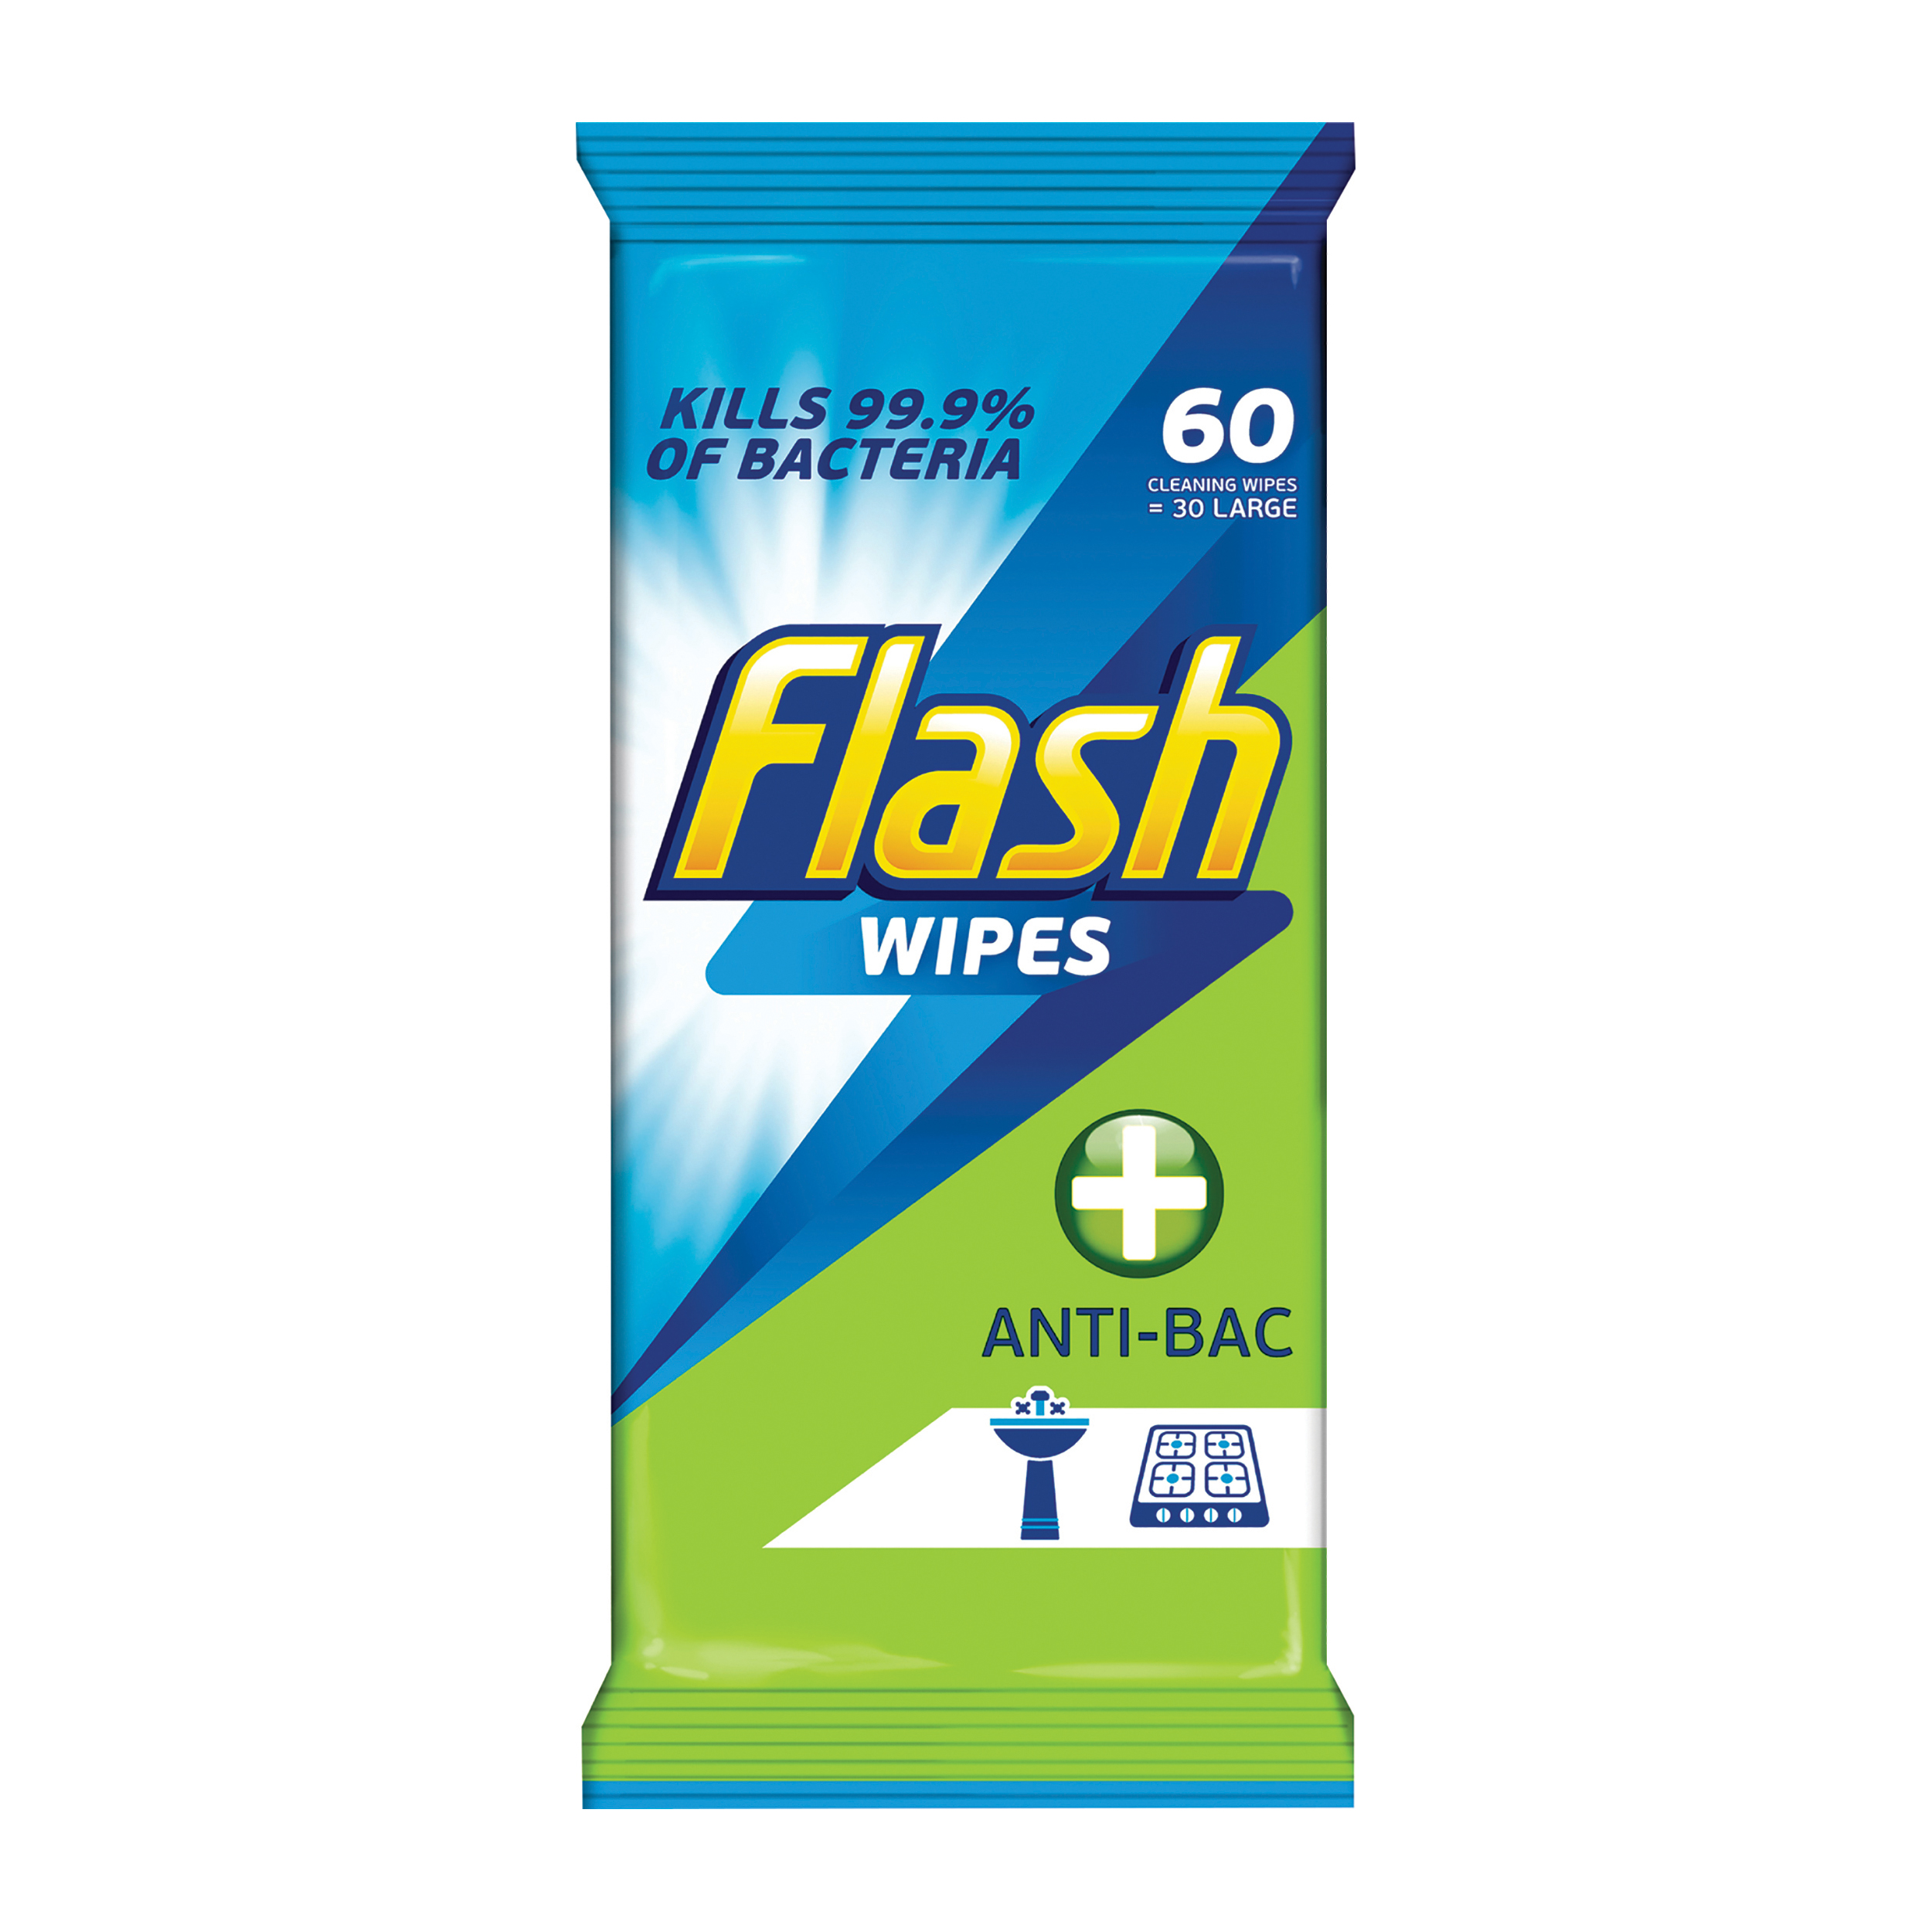 Flash Cleaning Wipes Unscented Antibacterial Ref 0706065 [60 Wipes]